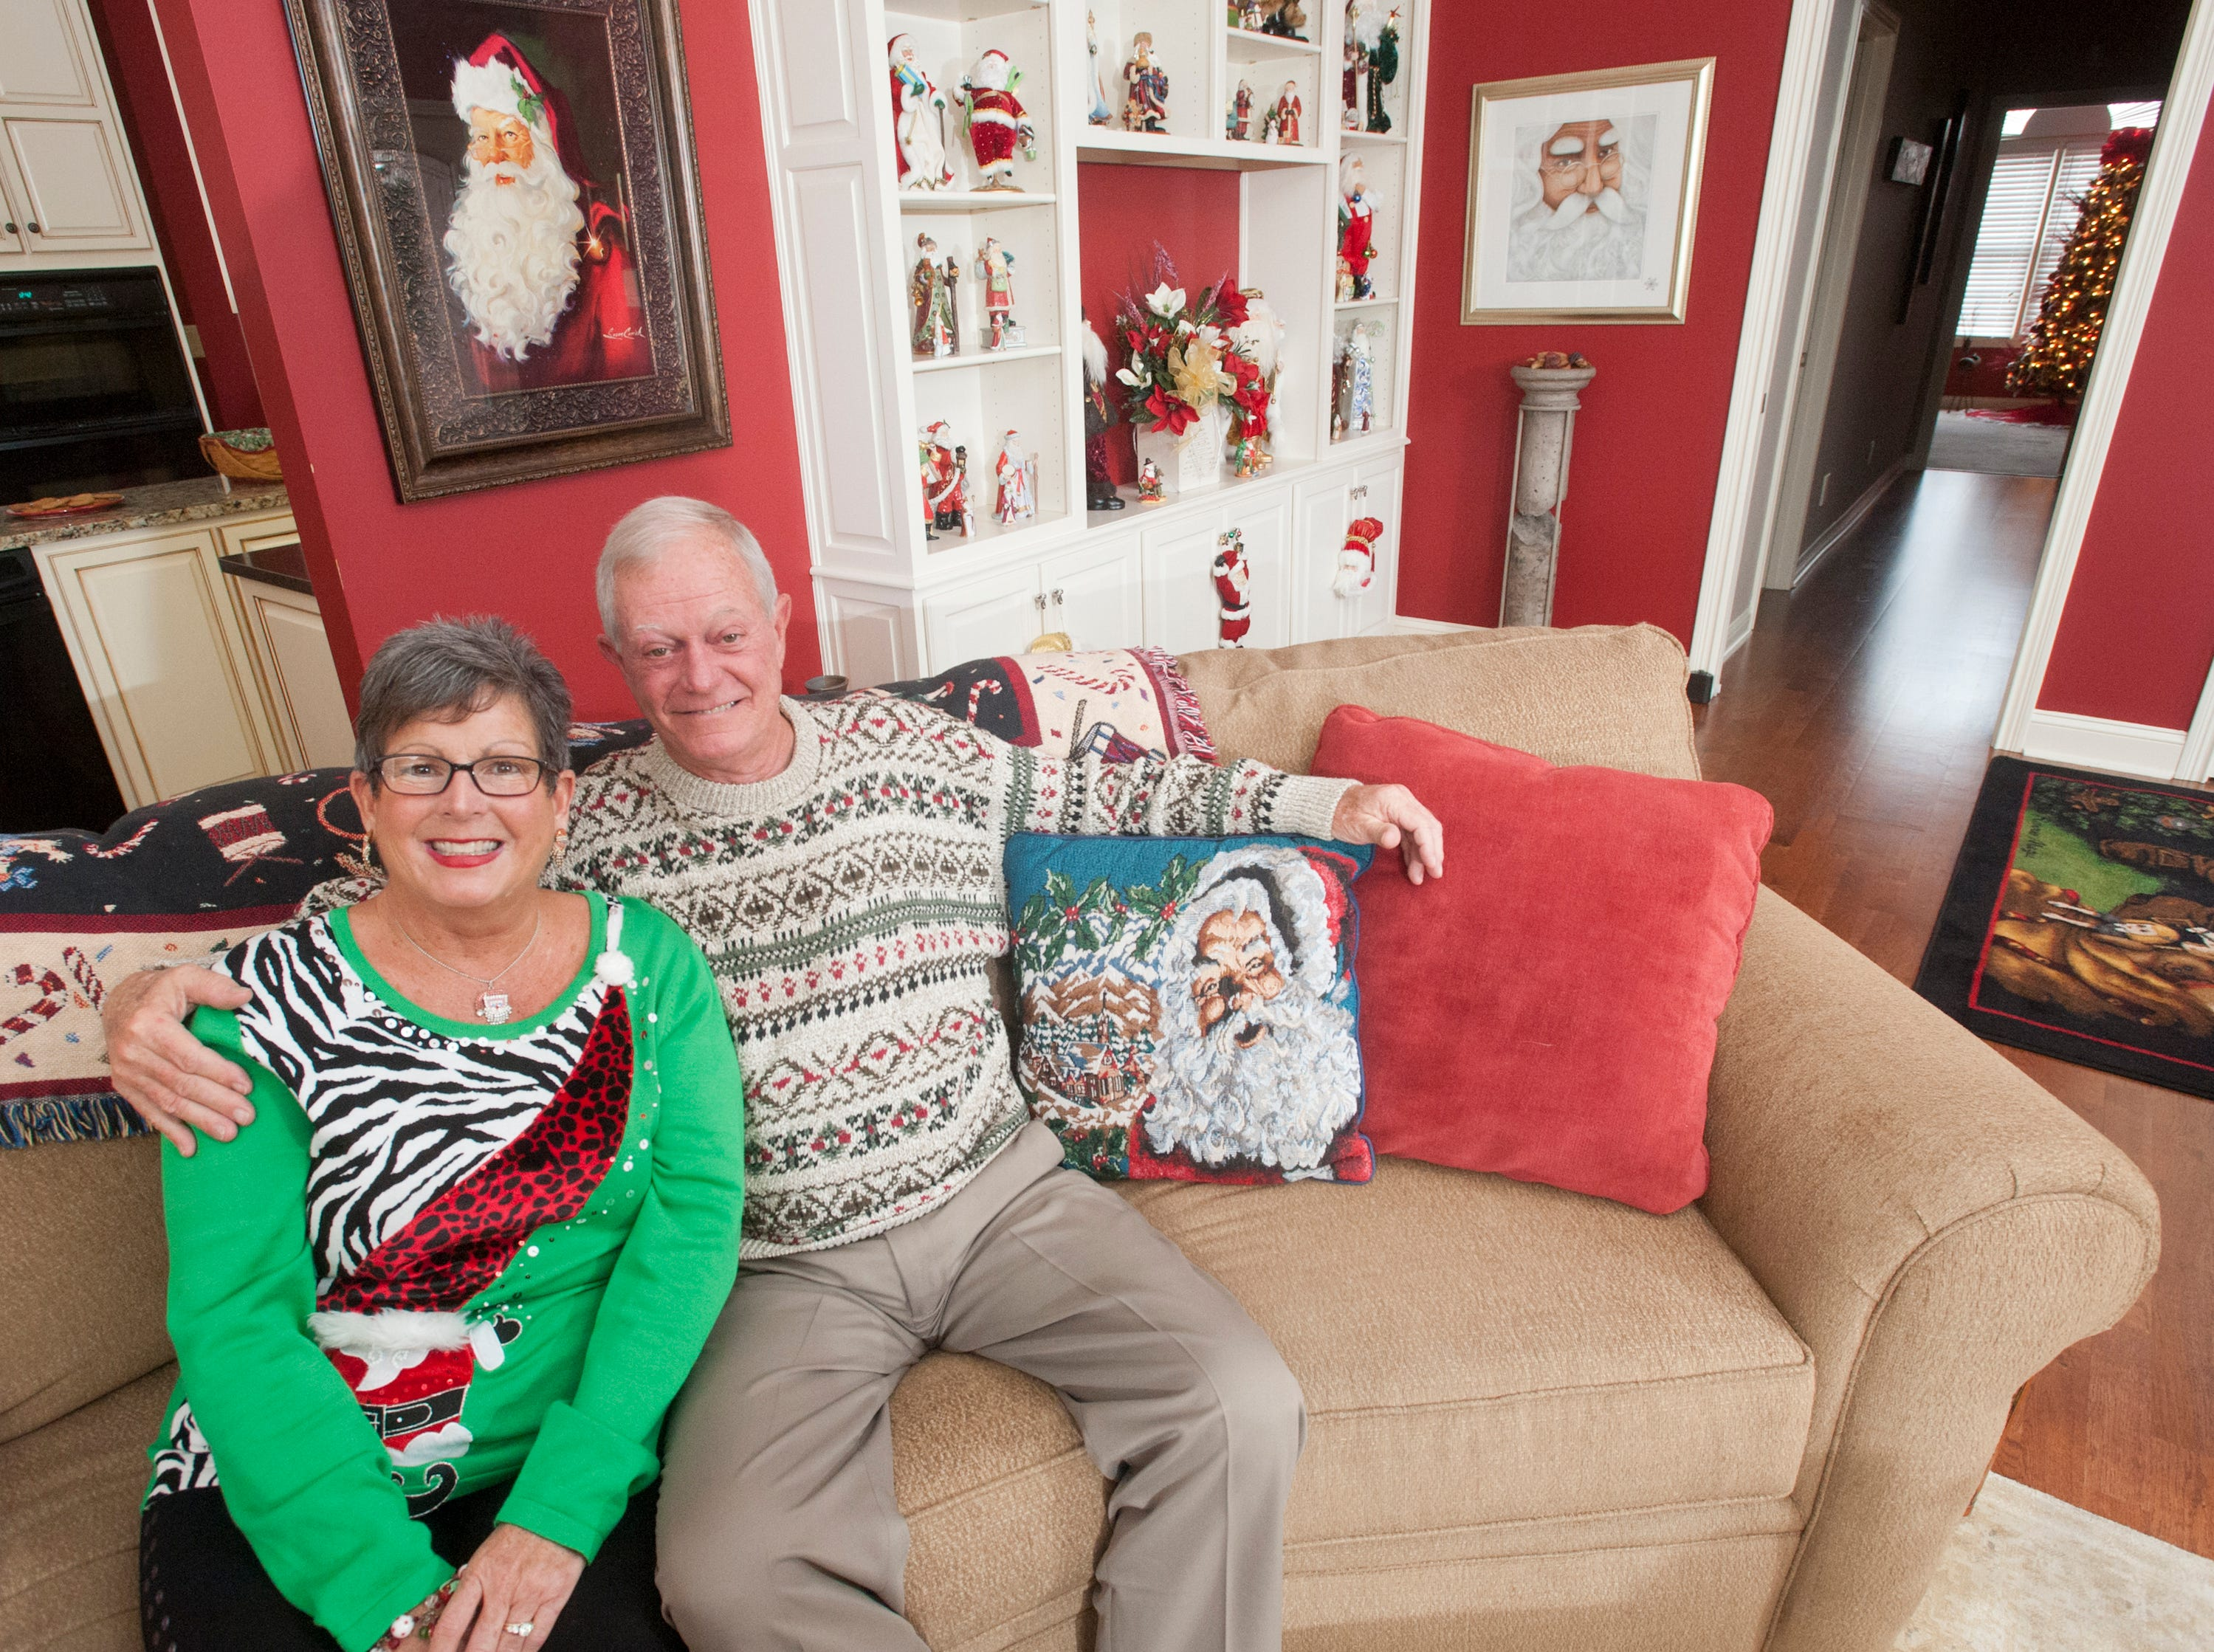 Teresa and Greg McMurry of Jeffersonville sit on their living room couch. Christmas decorating is a big tradition in their home. They've put up holiday items together for over 20 years.